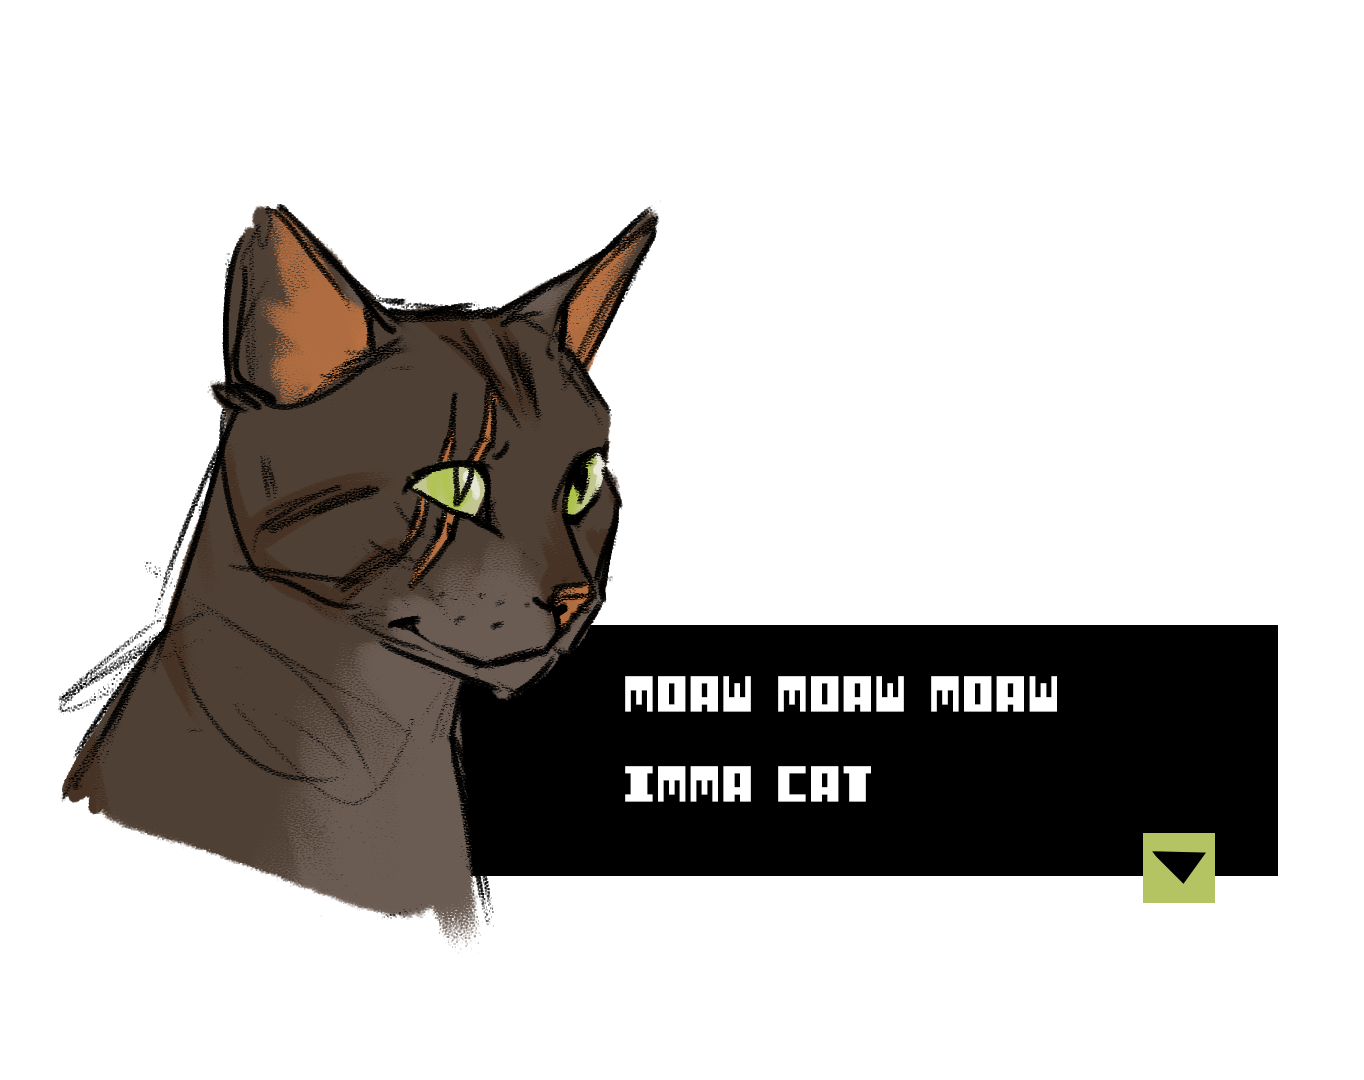 Cat character art by Sophie Morris